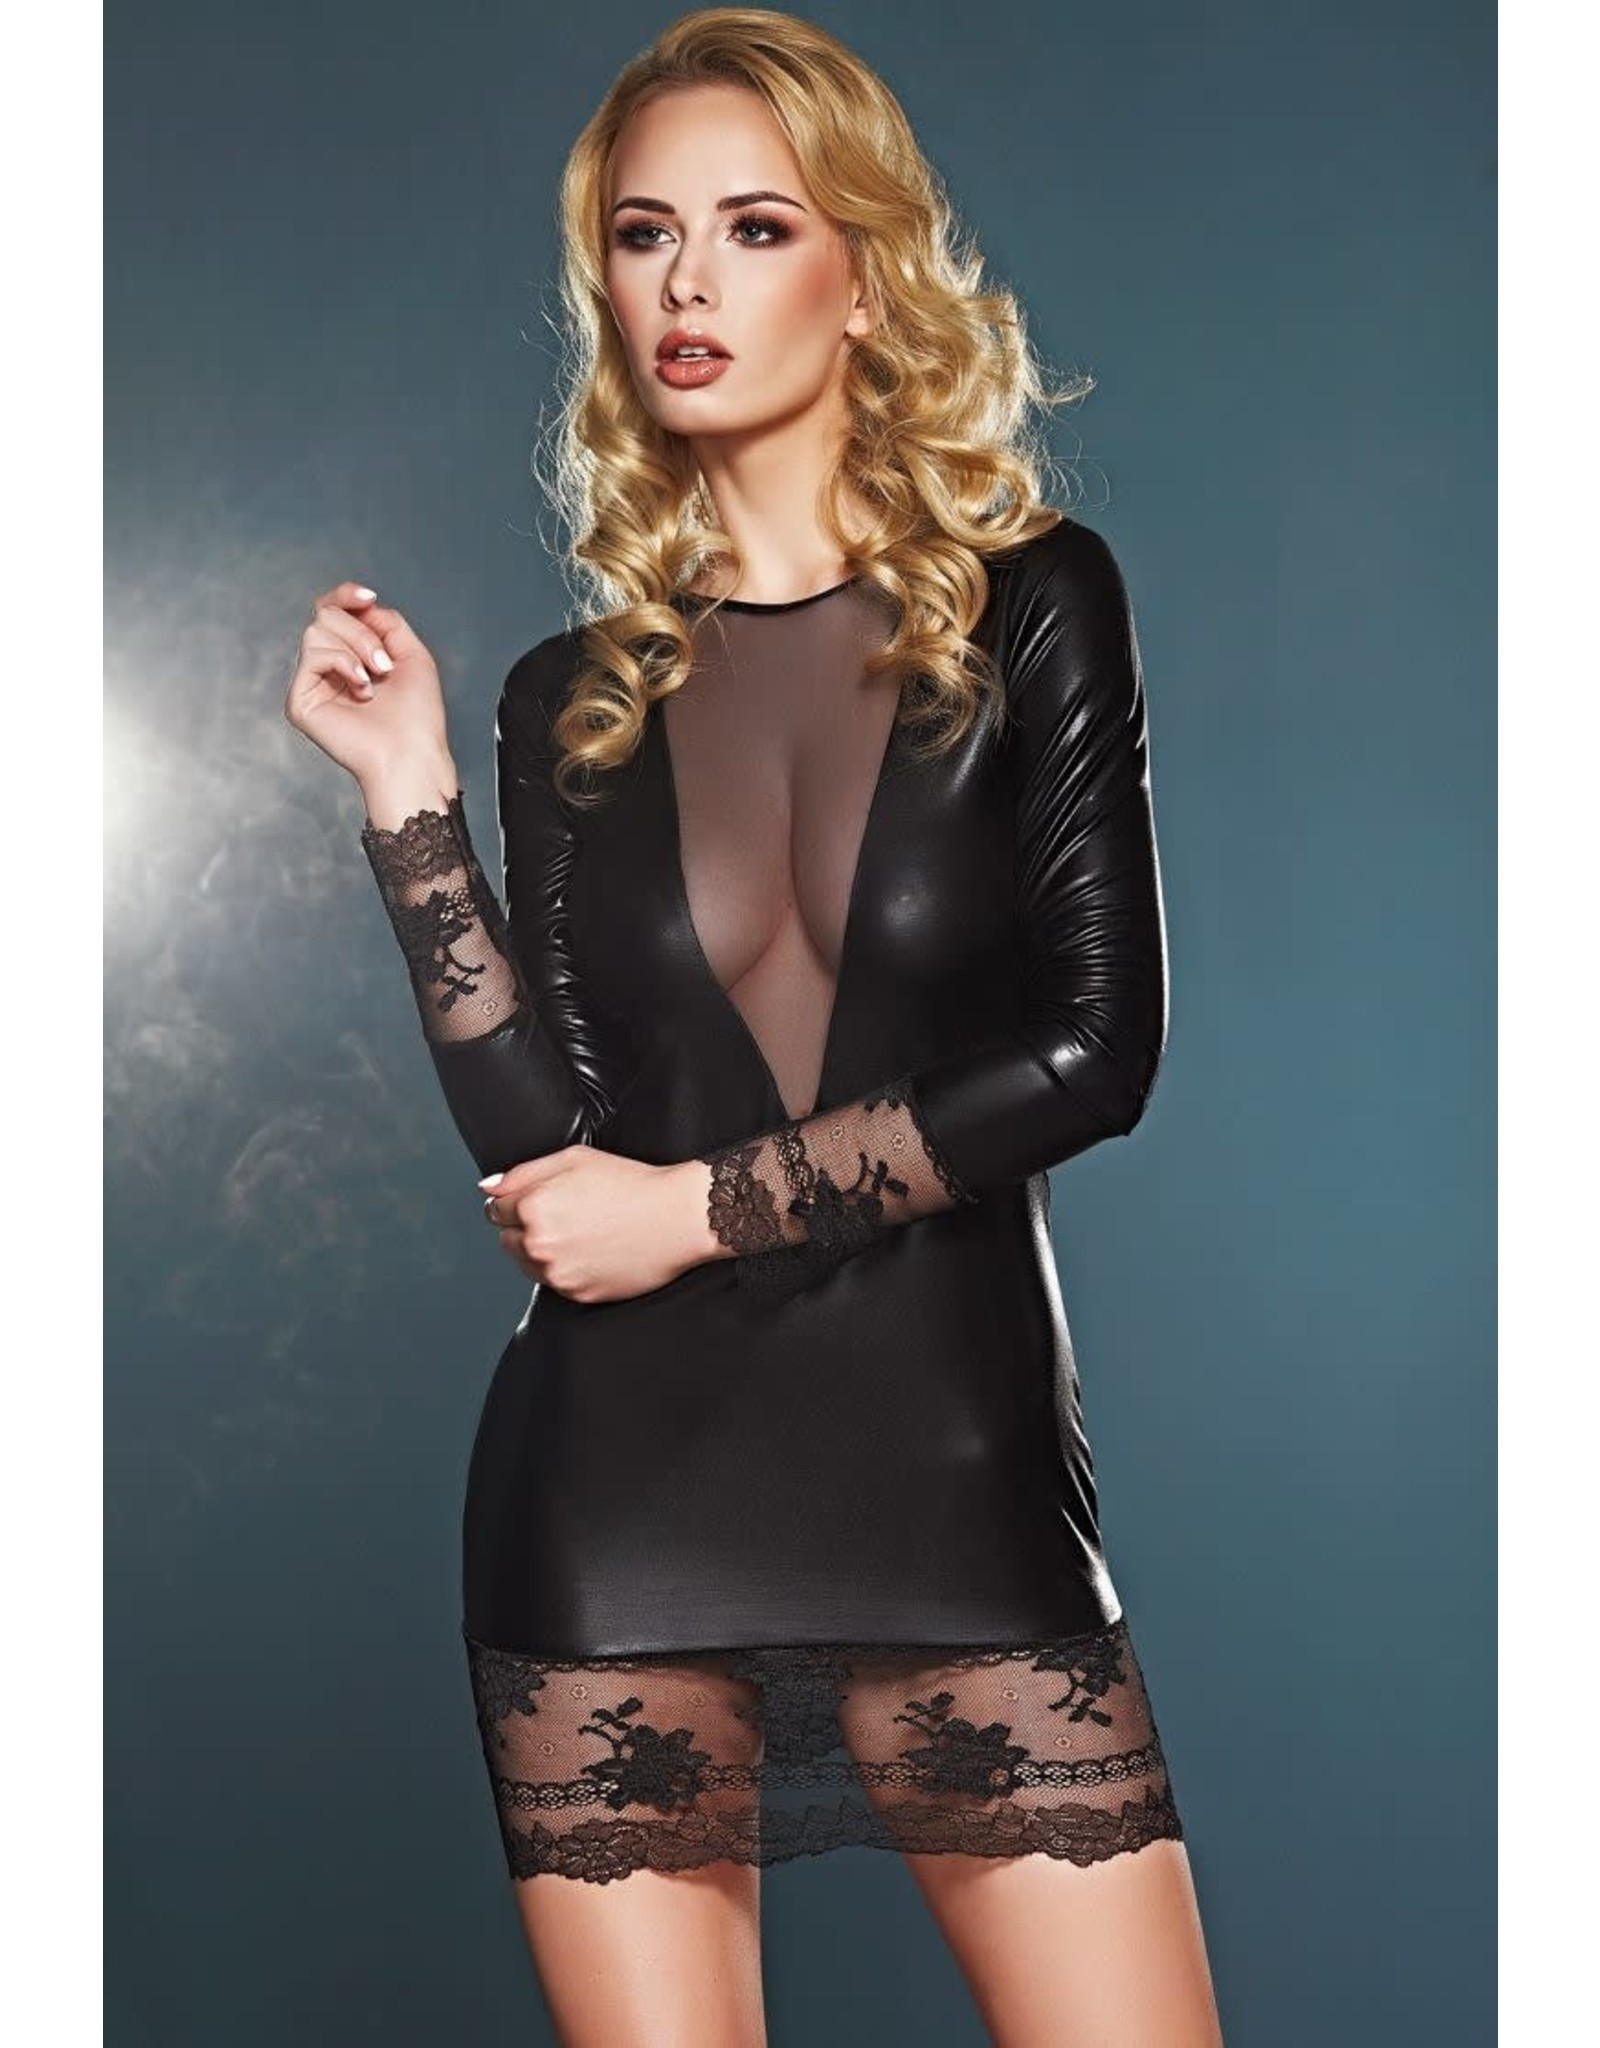 7 HEAVEN 7 HEAVEN - ELEGANT LONG-SLEEVE WET-LOOK DRESS WITH LACE AND TULLE DETAILS - MEDIUM - BLACK